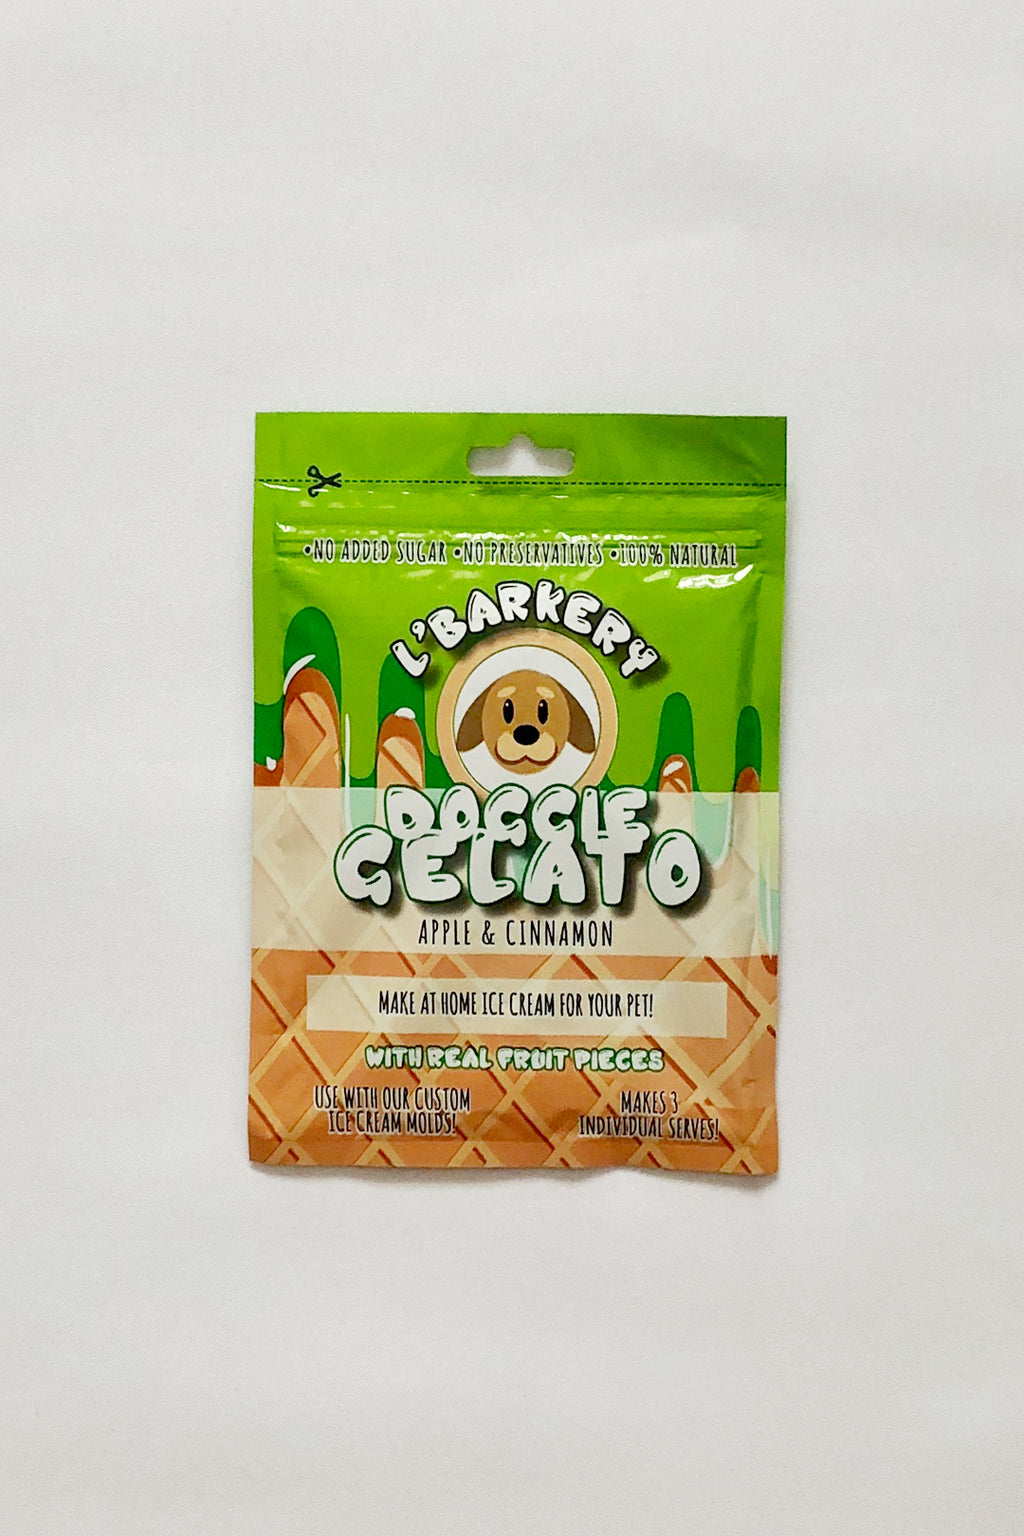 Gelato for dogs - Apple & Cinnamon Doggie Gelato by L'Barkery. Shop online make at home gelato for dogs and cats.